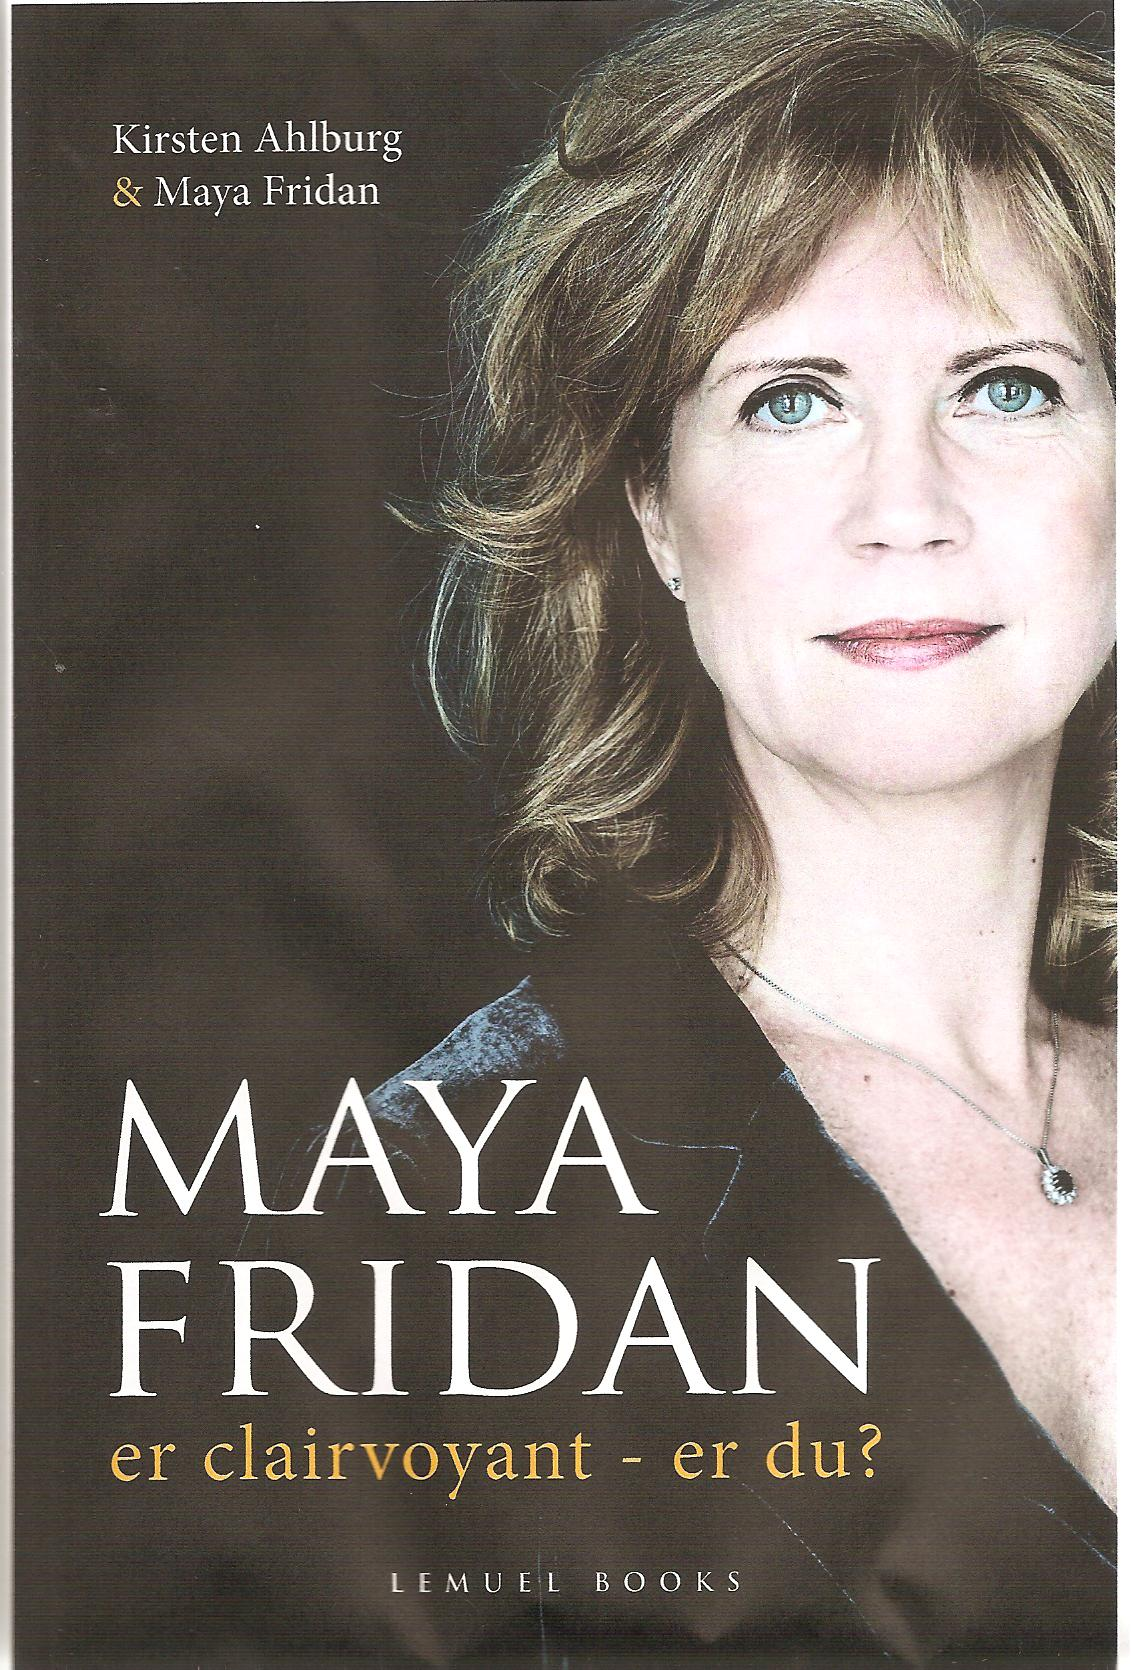 Maya Fridan forside 0011 Maya Fridan er clairvoyant   er du?